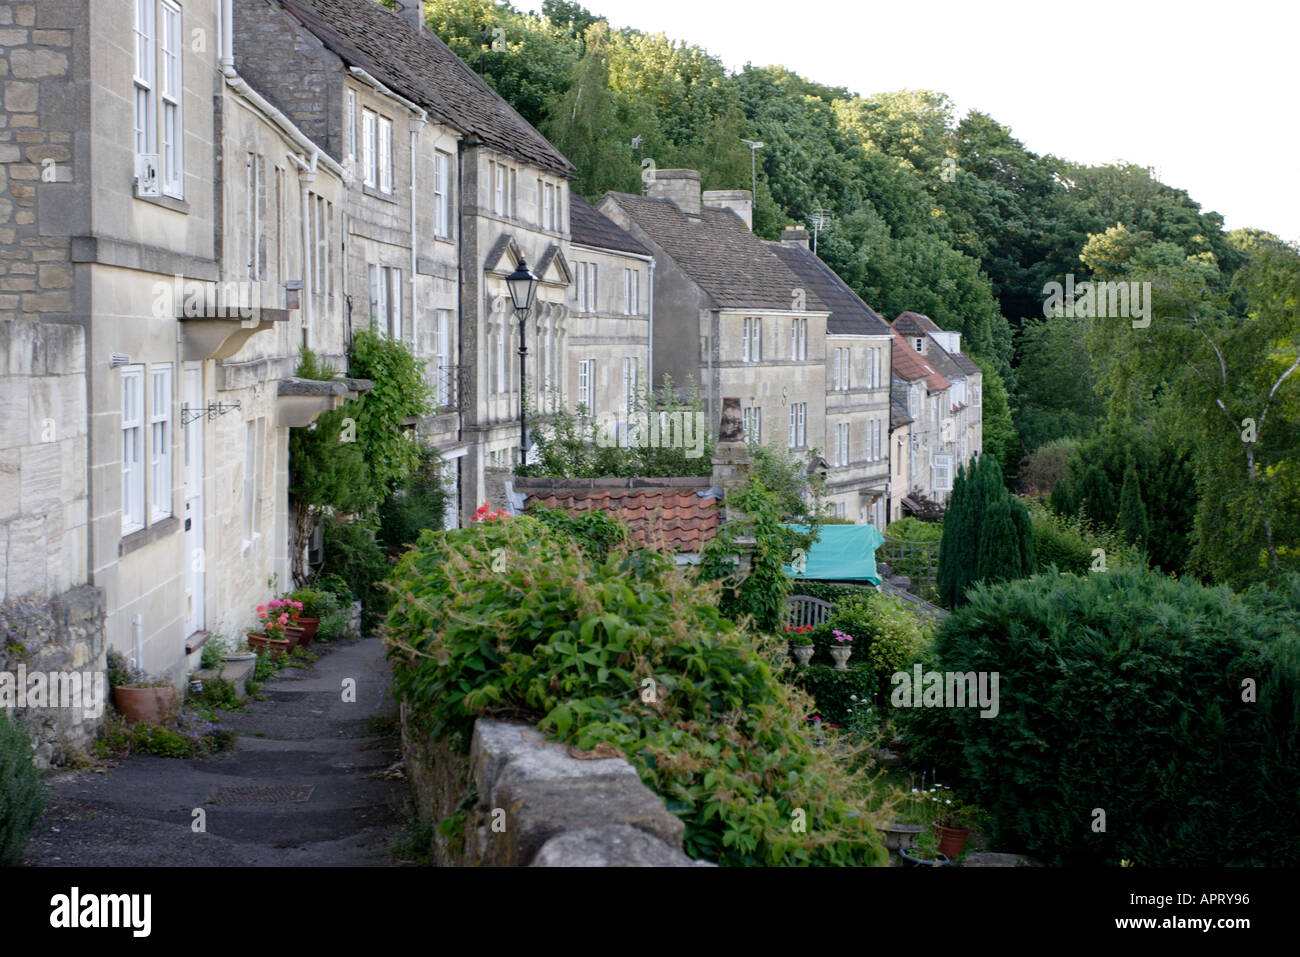 Cottages in Tory and Middle Rank Bradford on Avon Stock Photo ...